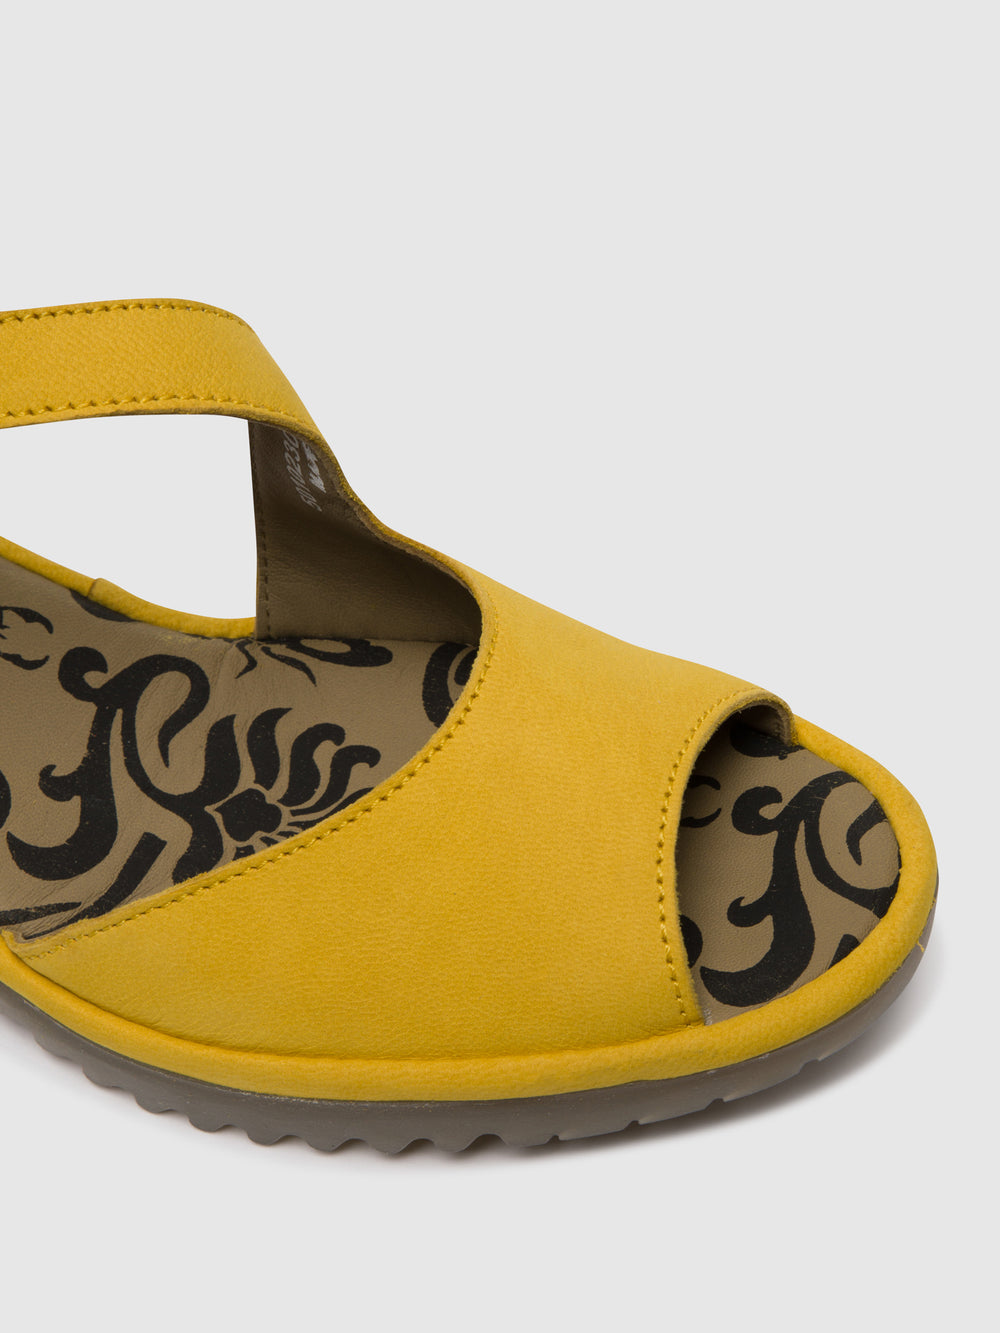 Velcro Sandals WYNO023FLY BRIGHT YELLOW